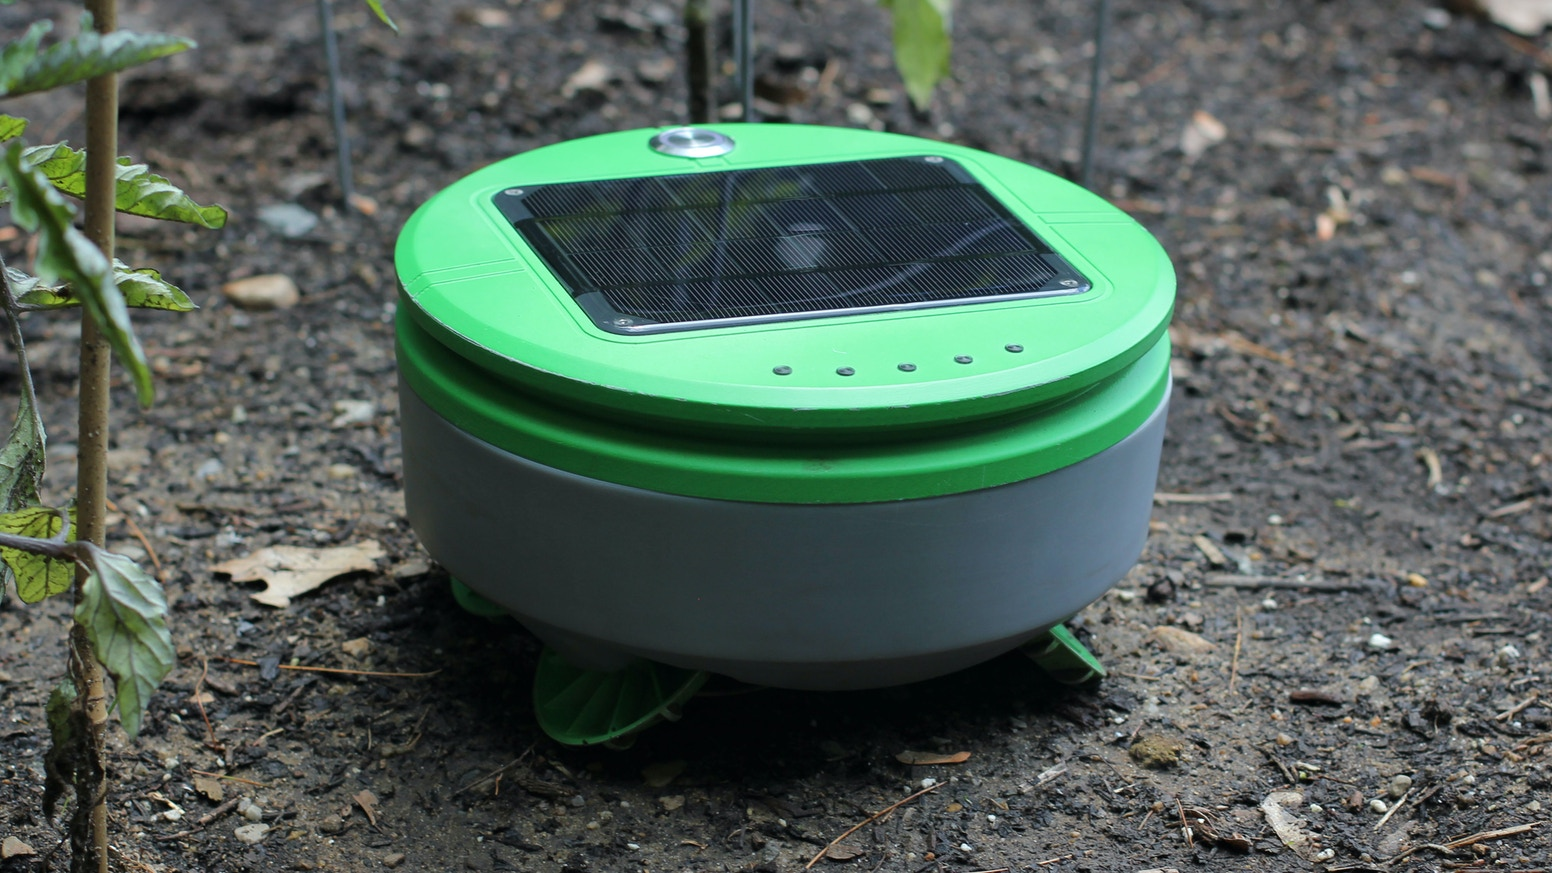 Weatherproof and self-charging, Tertill lives in your vegetable or flower garden and takes care of the weeding.